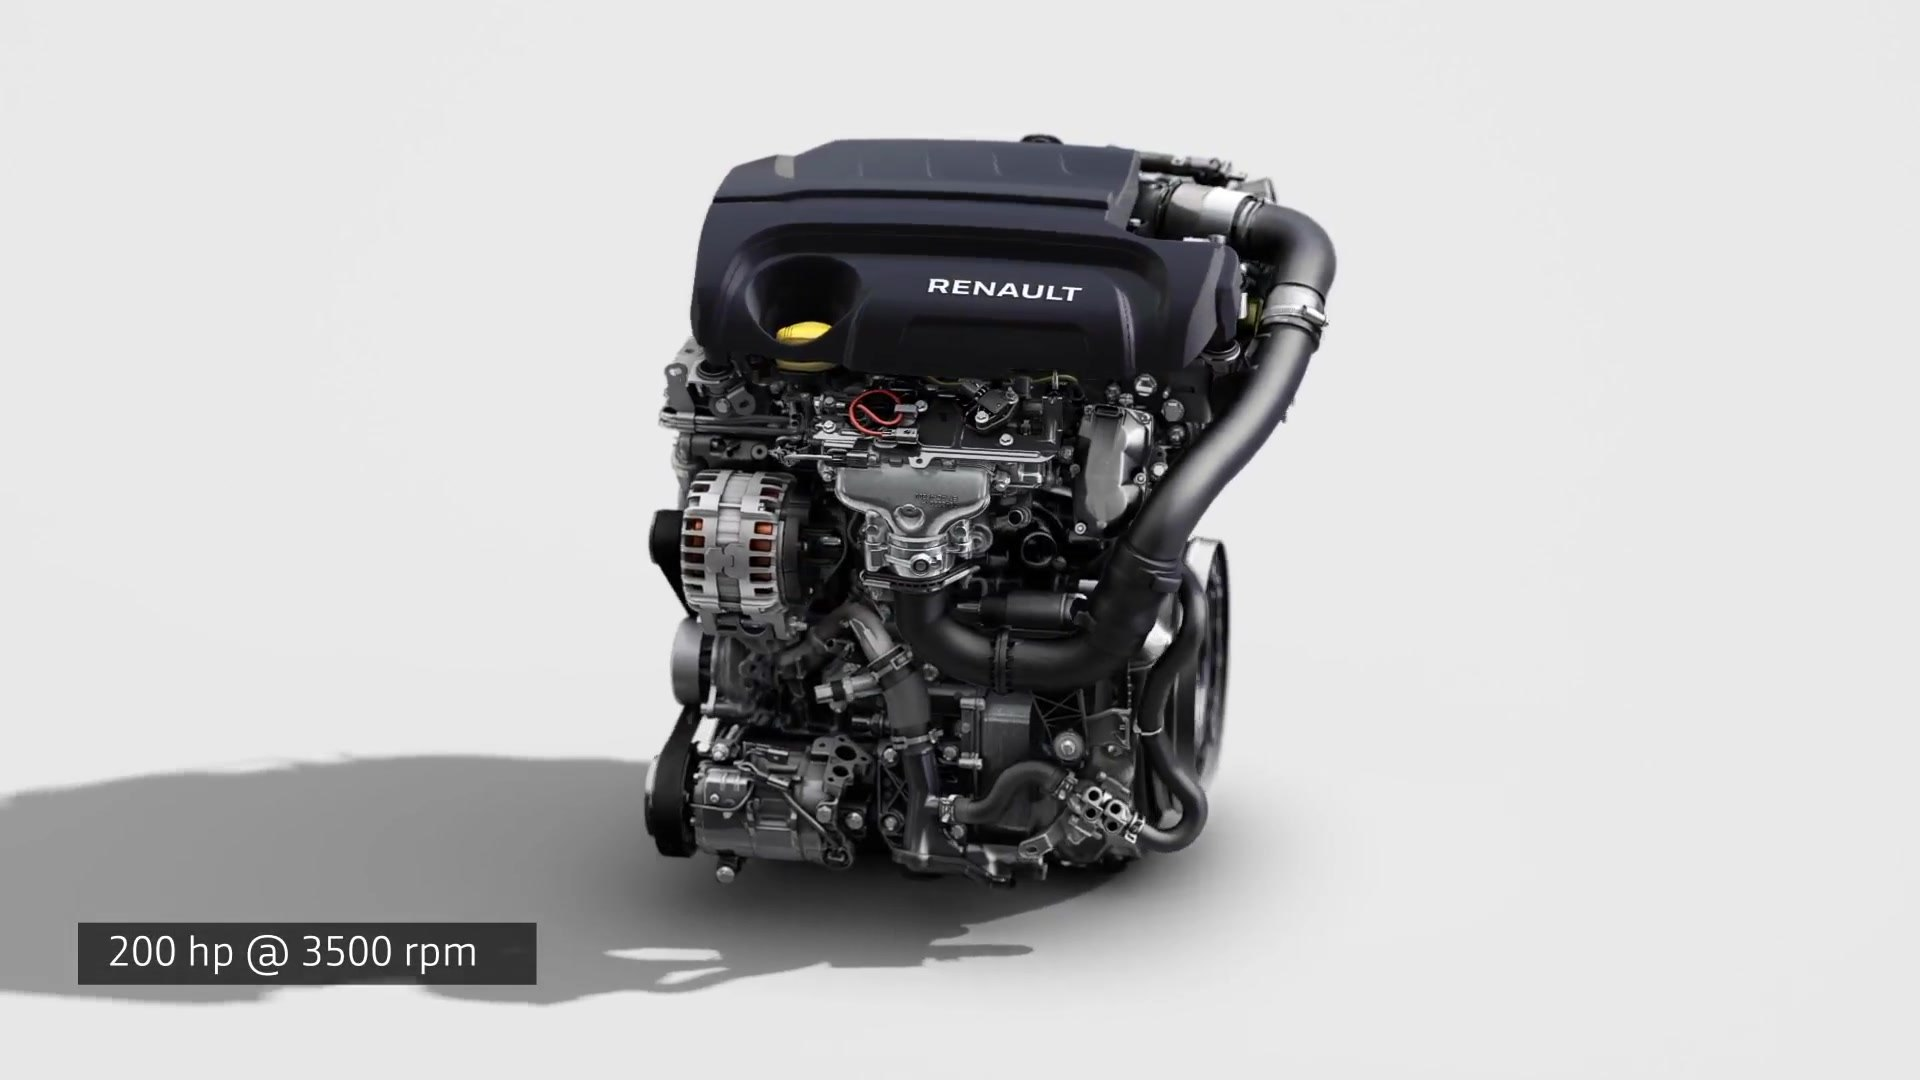 renault-unveils-blue-dci-200-2-liter-diesel-with-200-hp-and-400-nm-130630_1